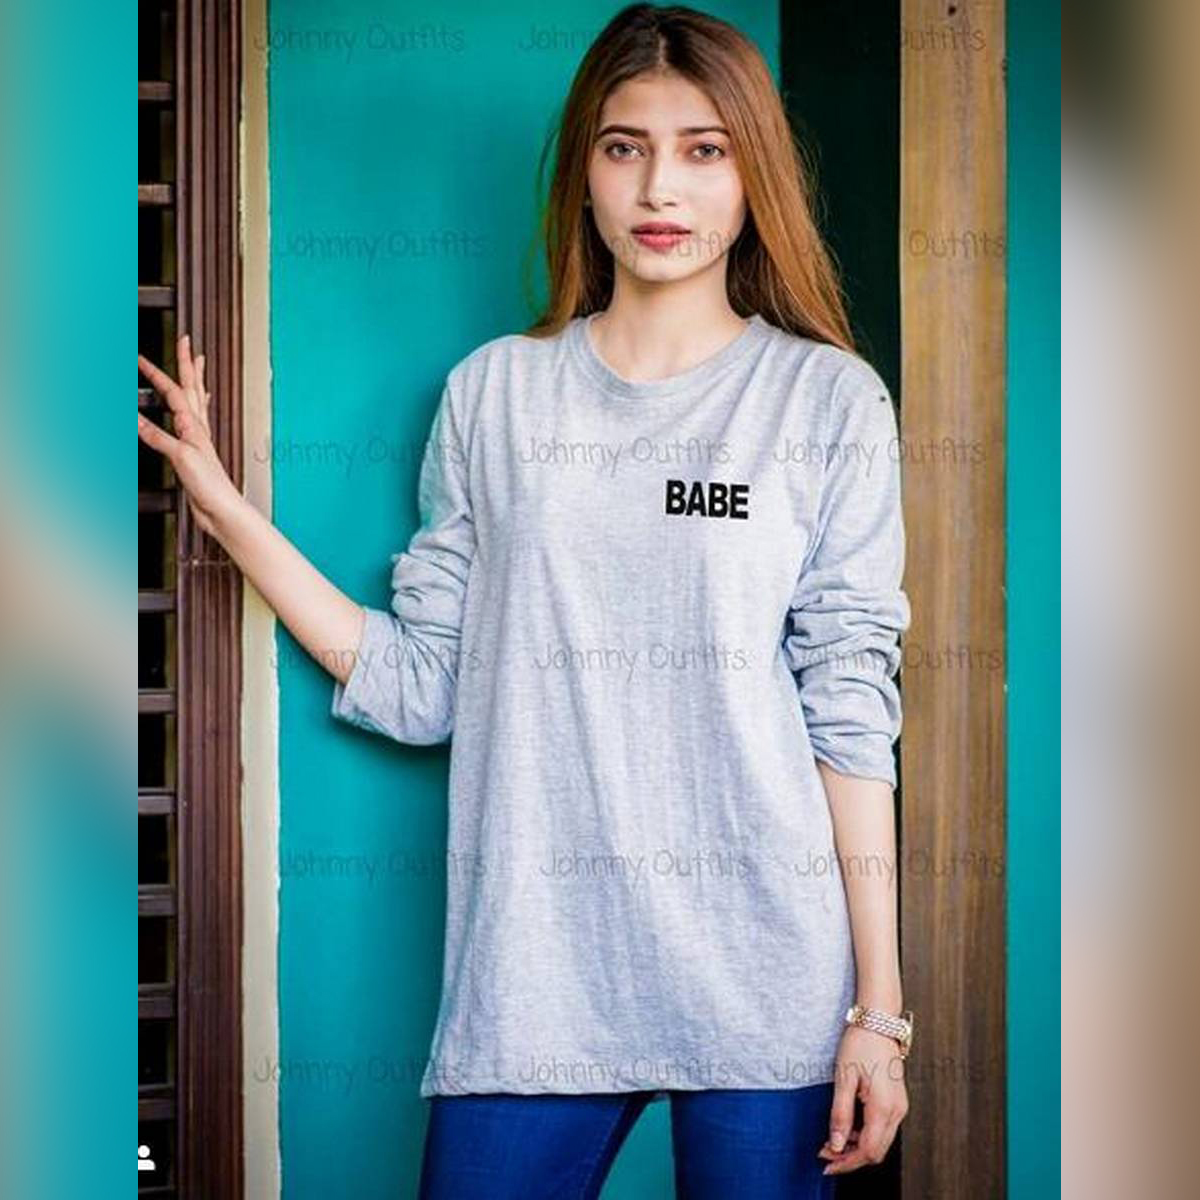 Babe Grey Full Sleeve Printed T-shirt For Women Casual Cotton tshirts For Lady Top Tee